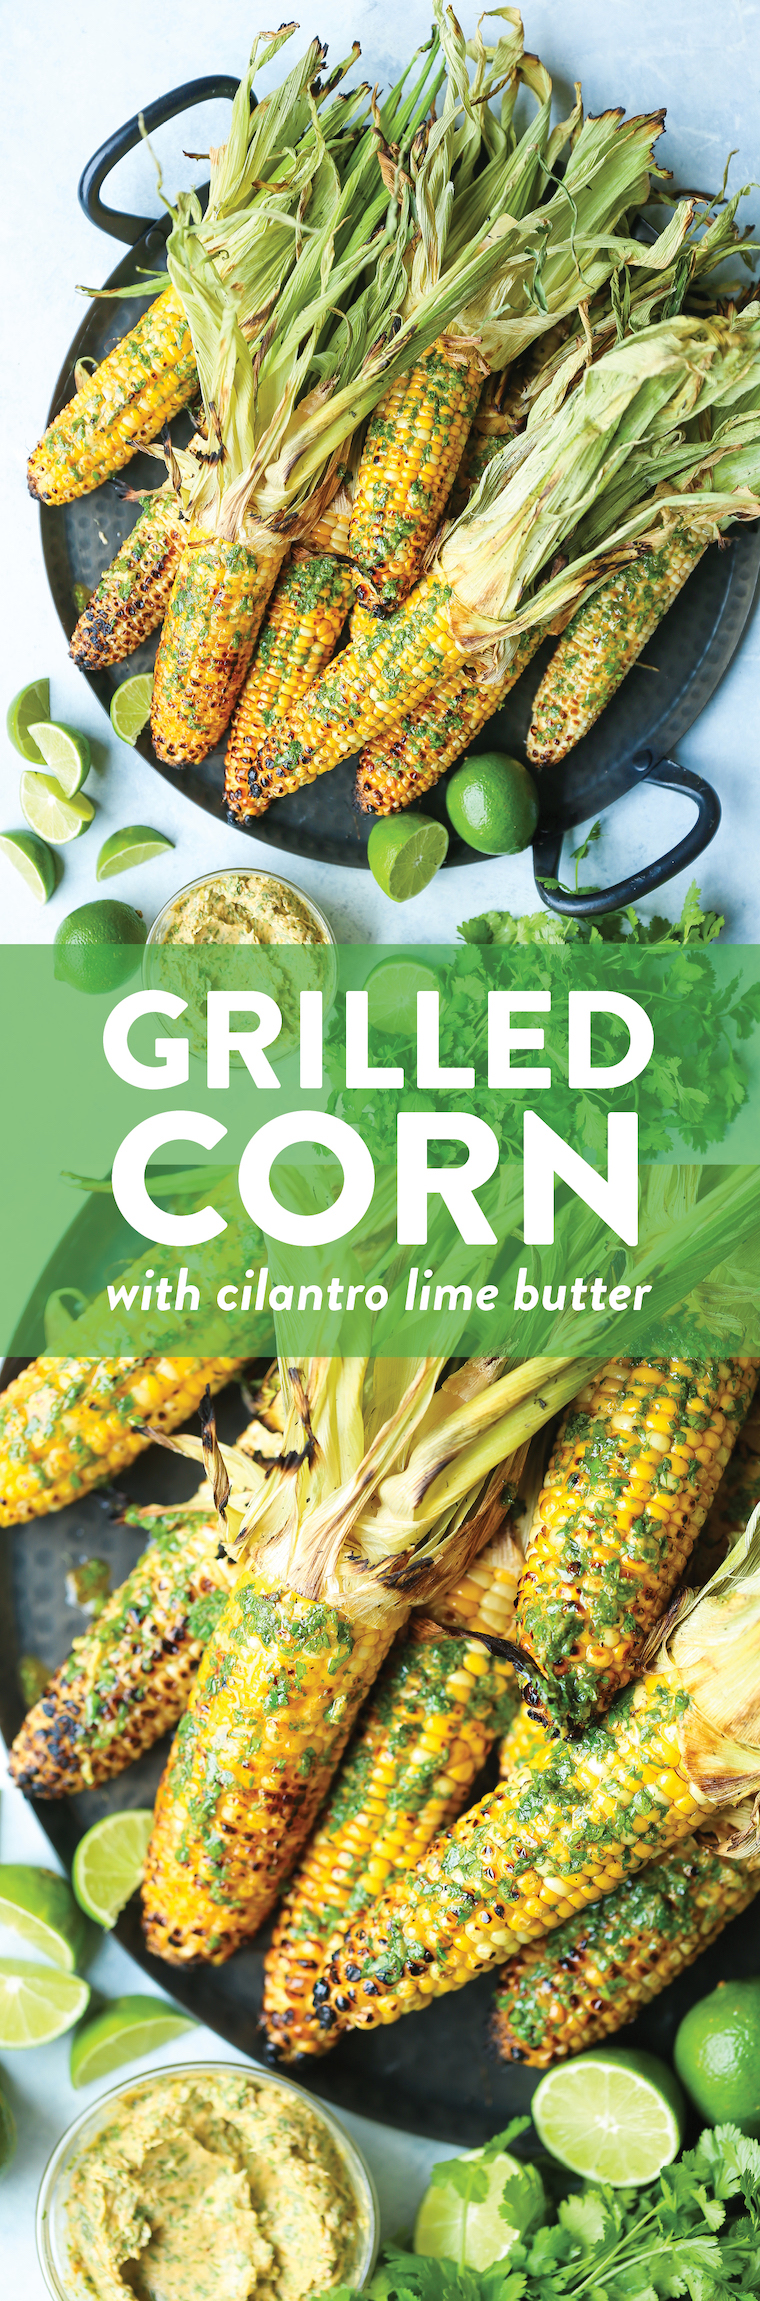 Grilled Corn with Cilantro Lime Butter - A SUMMER STAPLE! Butter, cilantro, garlic, lime, chili powder, and paprika. Option to grill or roast corn. SO GOOD!